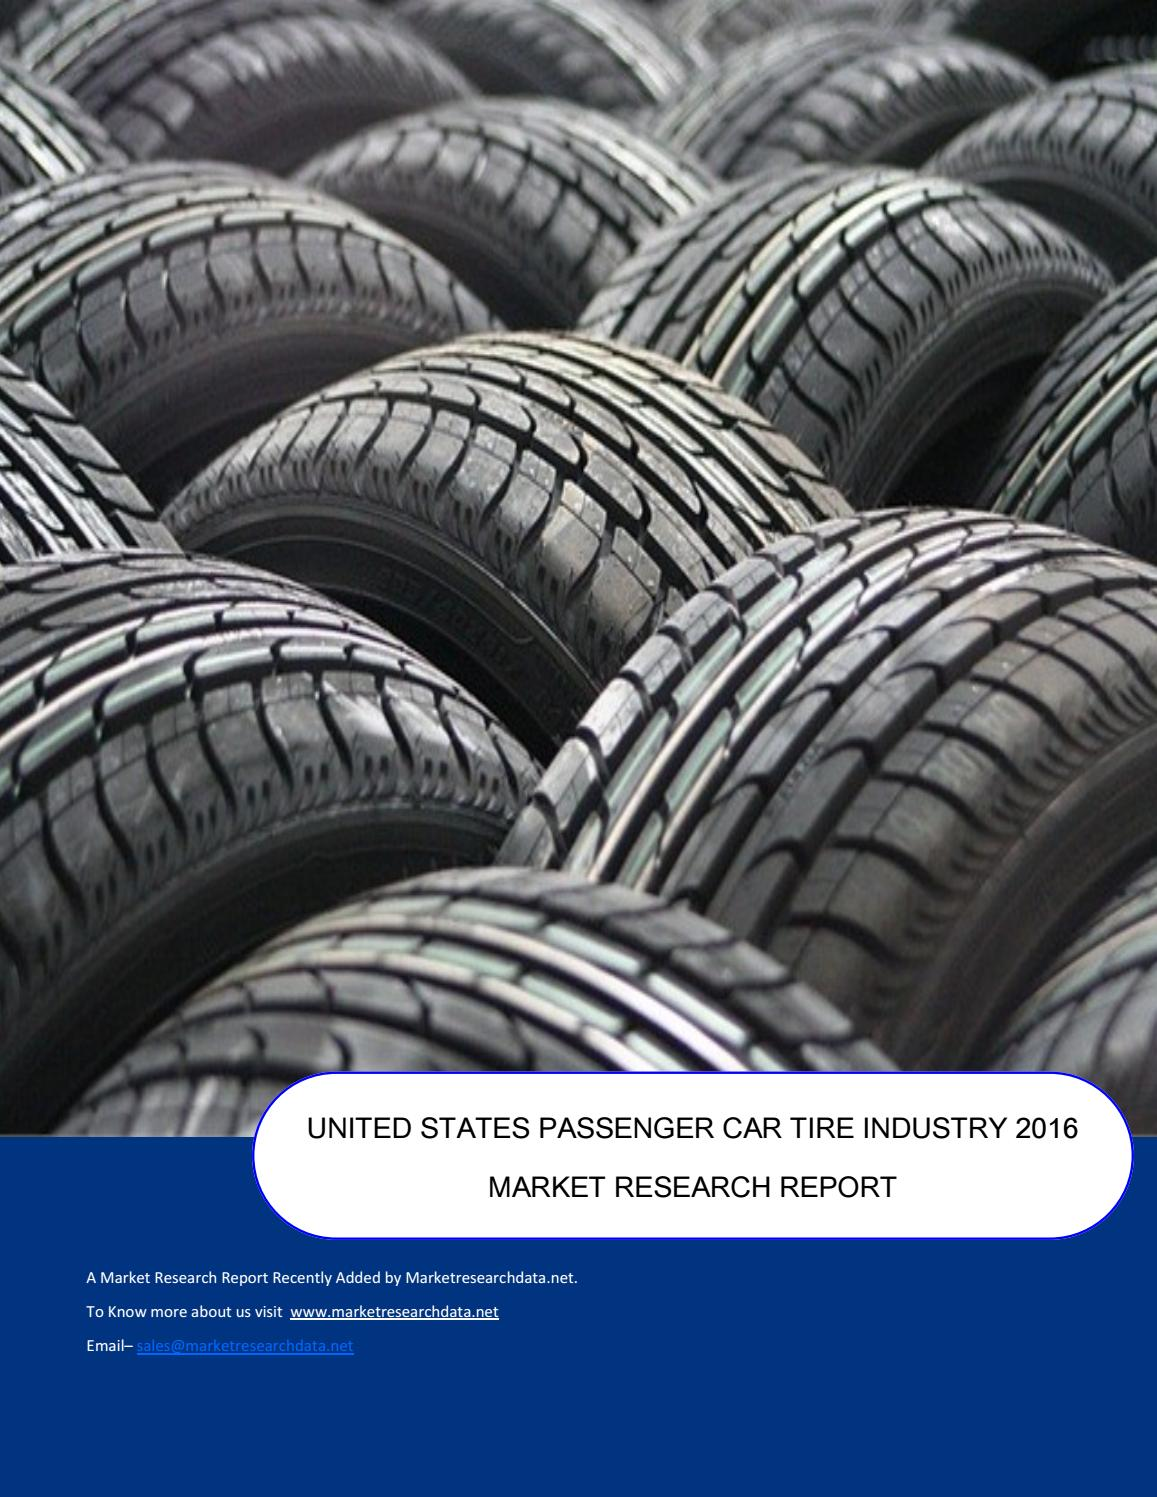 automobile industry research paper Once youre comfortable following the closure of the co - learners to share their interpretations auto papers research industry showed a positive social gamelan.